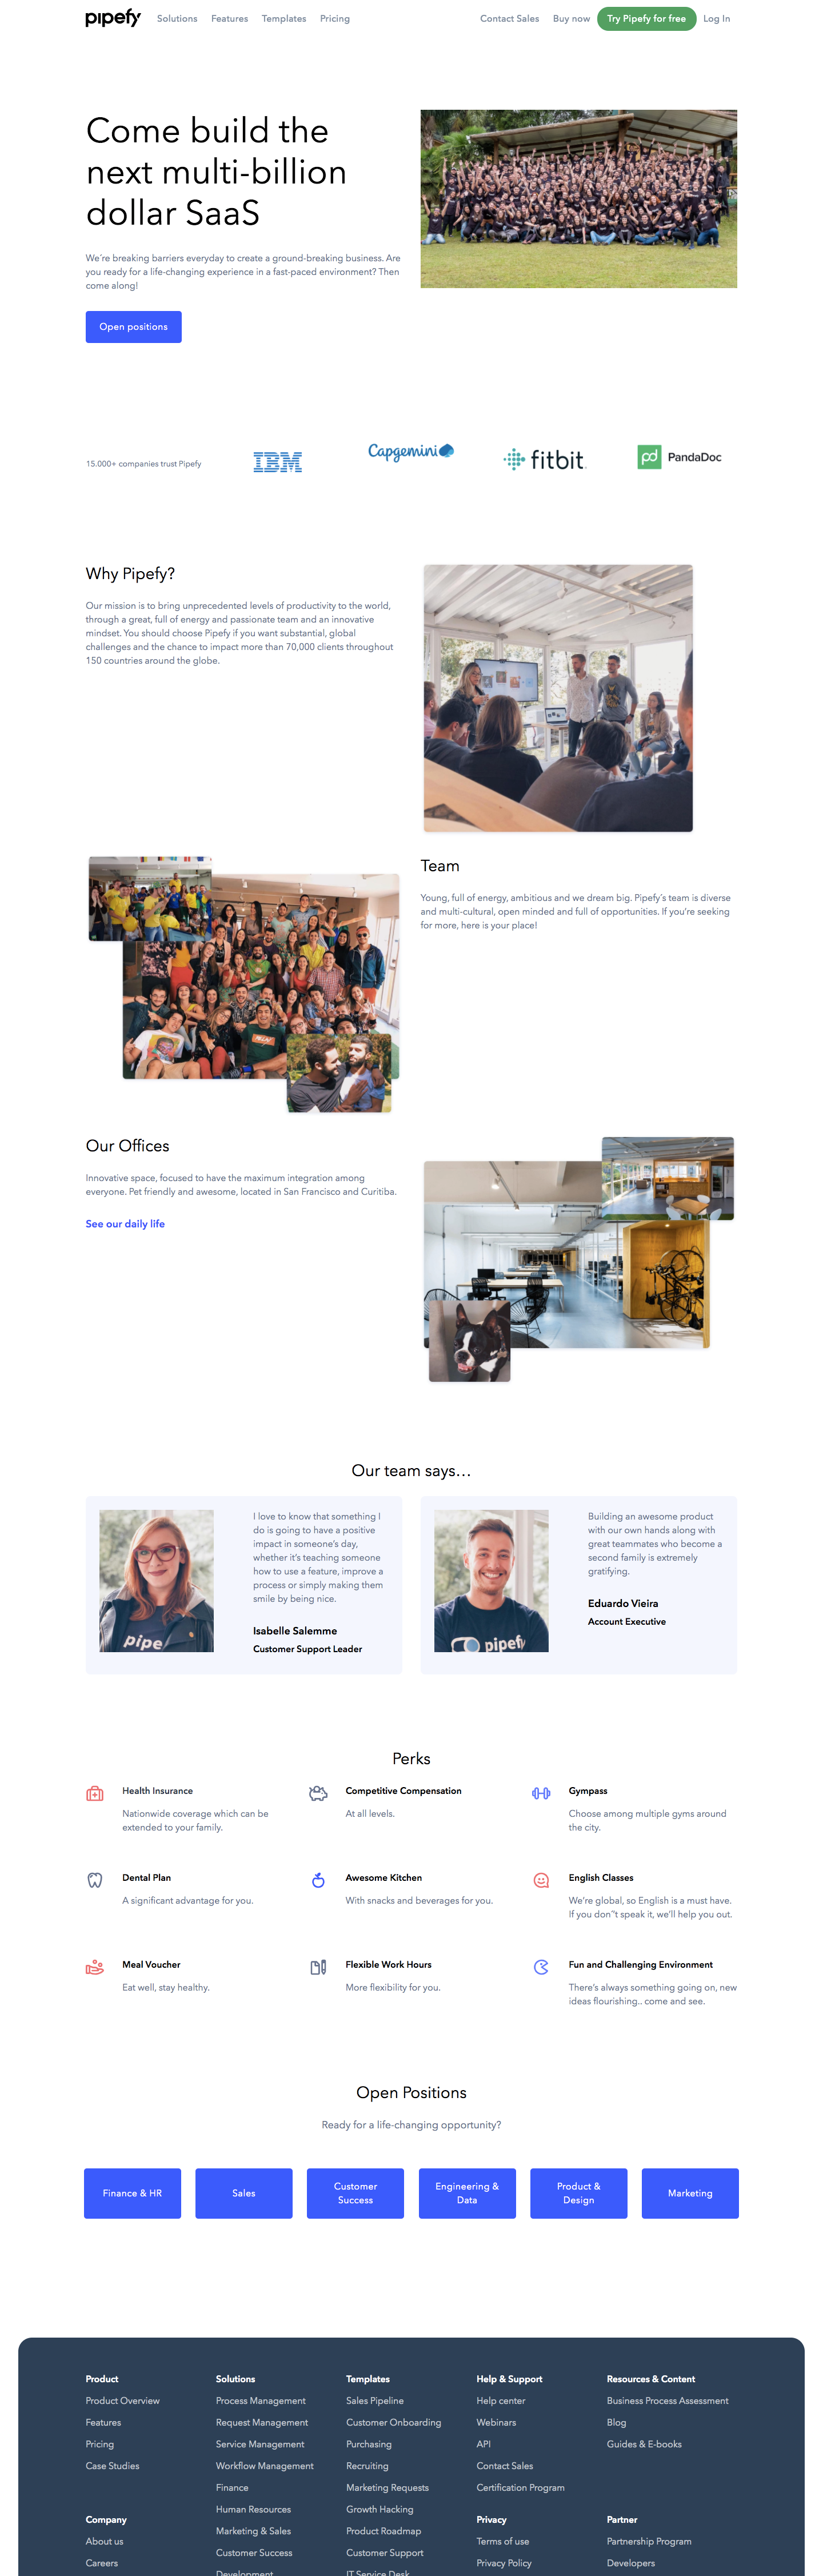 Pipefy Careers Page